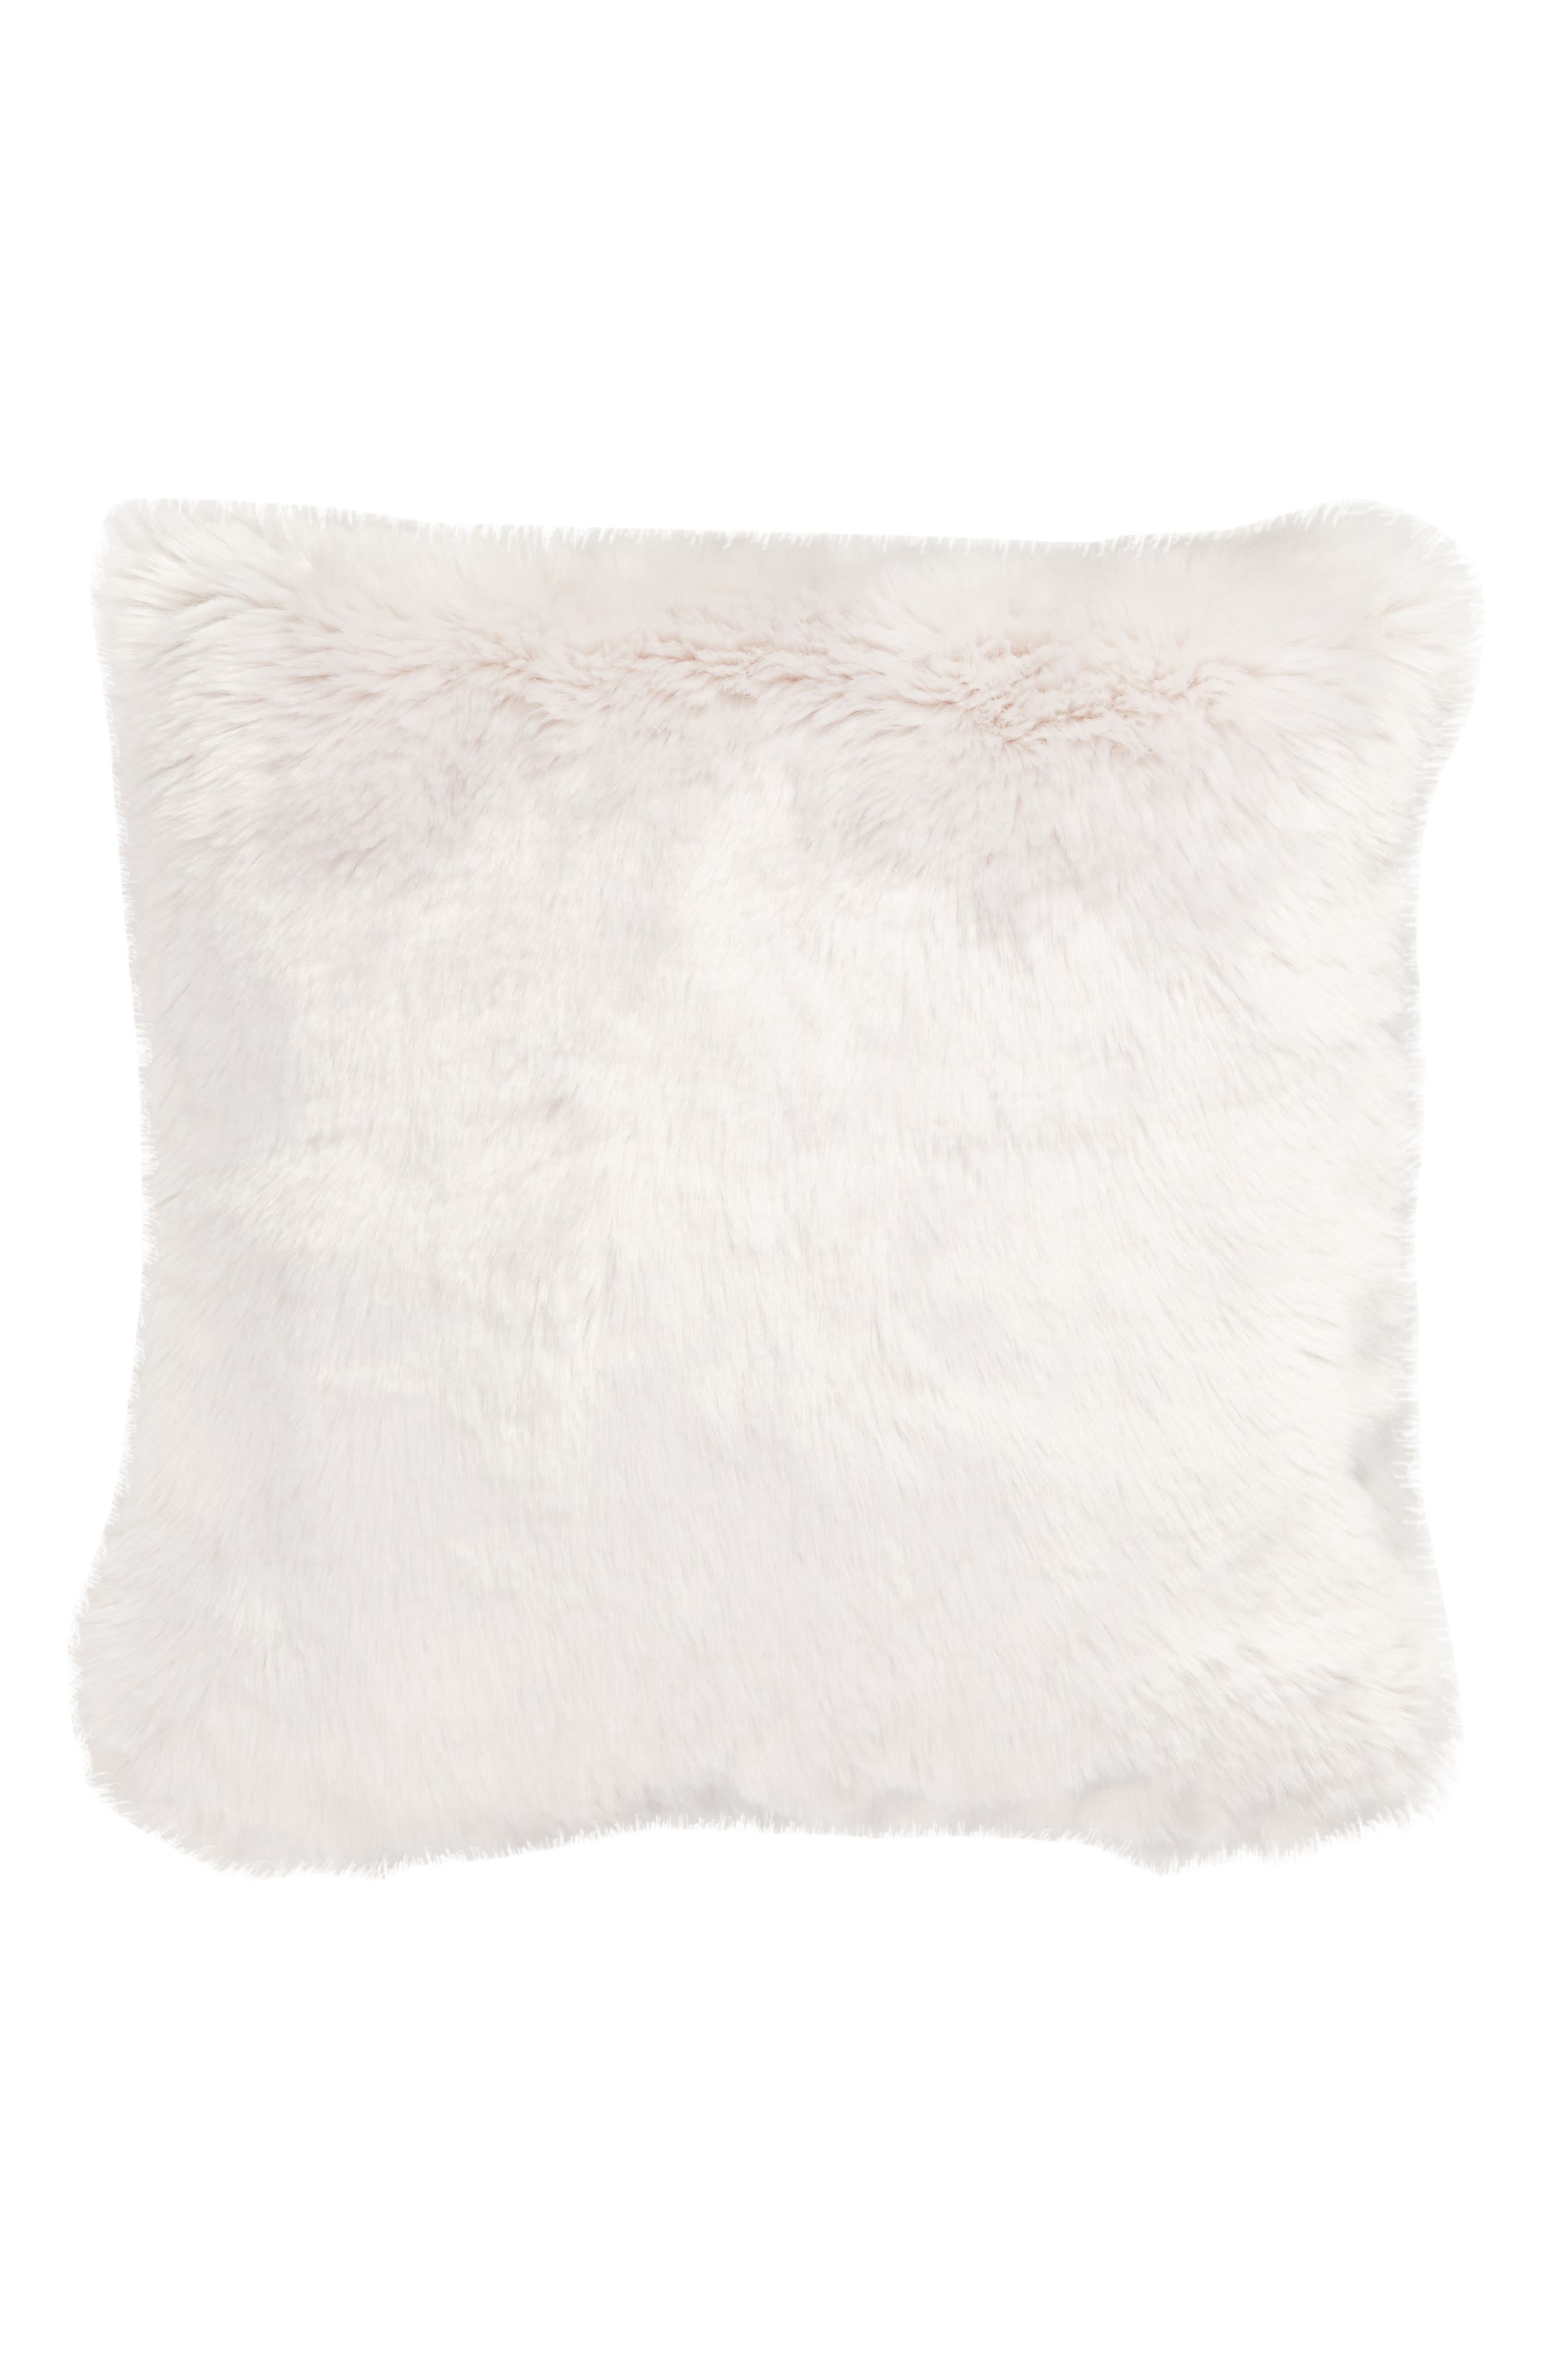 NORDSTROM AT HOME, Cuddle Up Faux Fur Pillow, Main thumbnail 1, color, GREY FOG